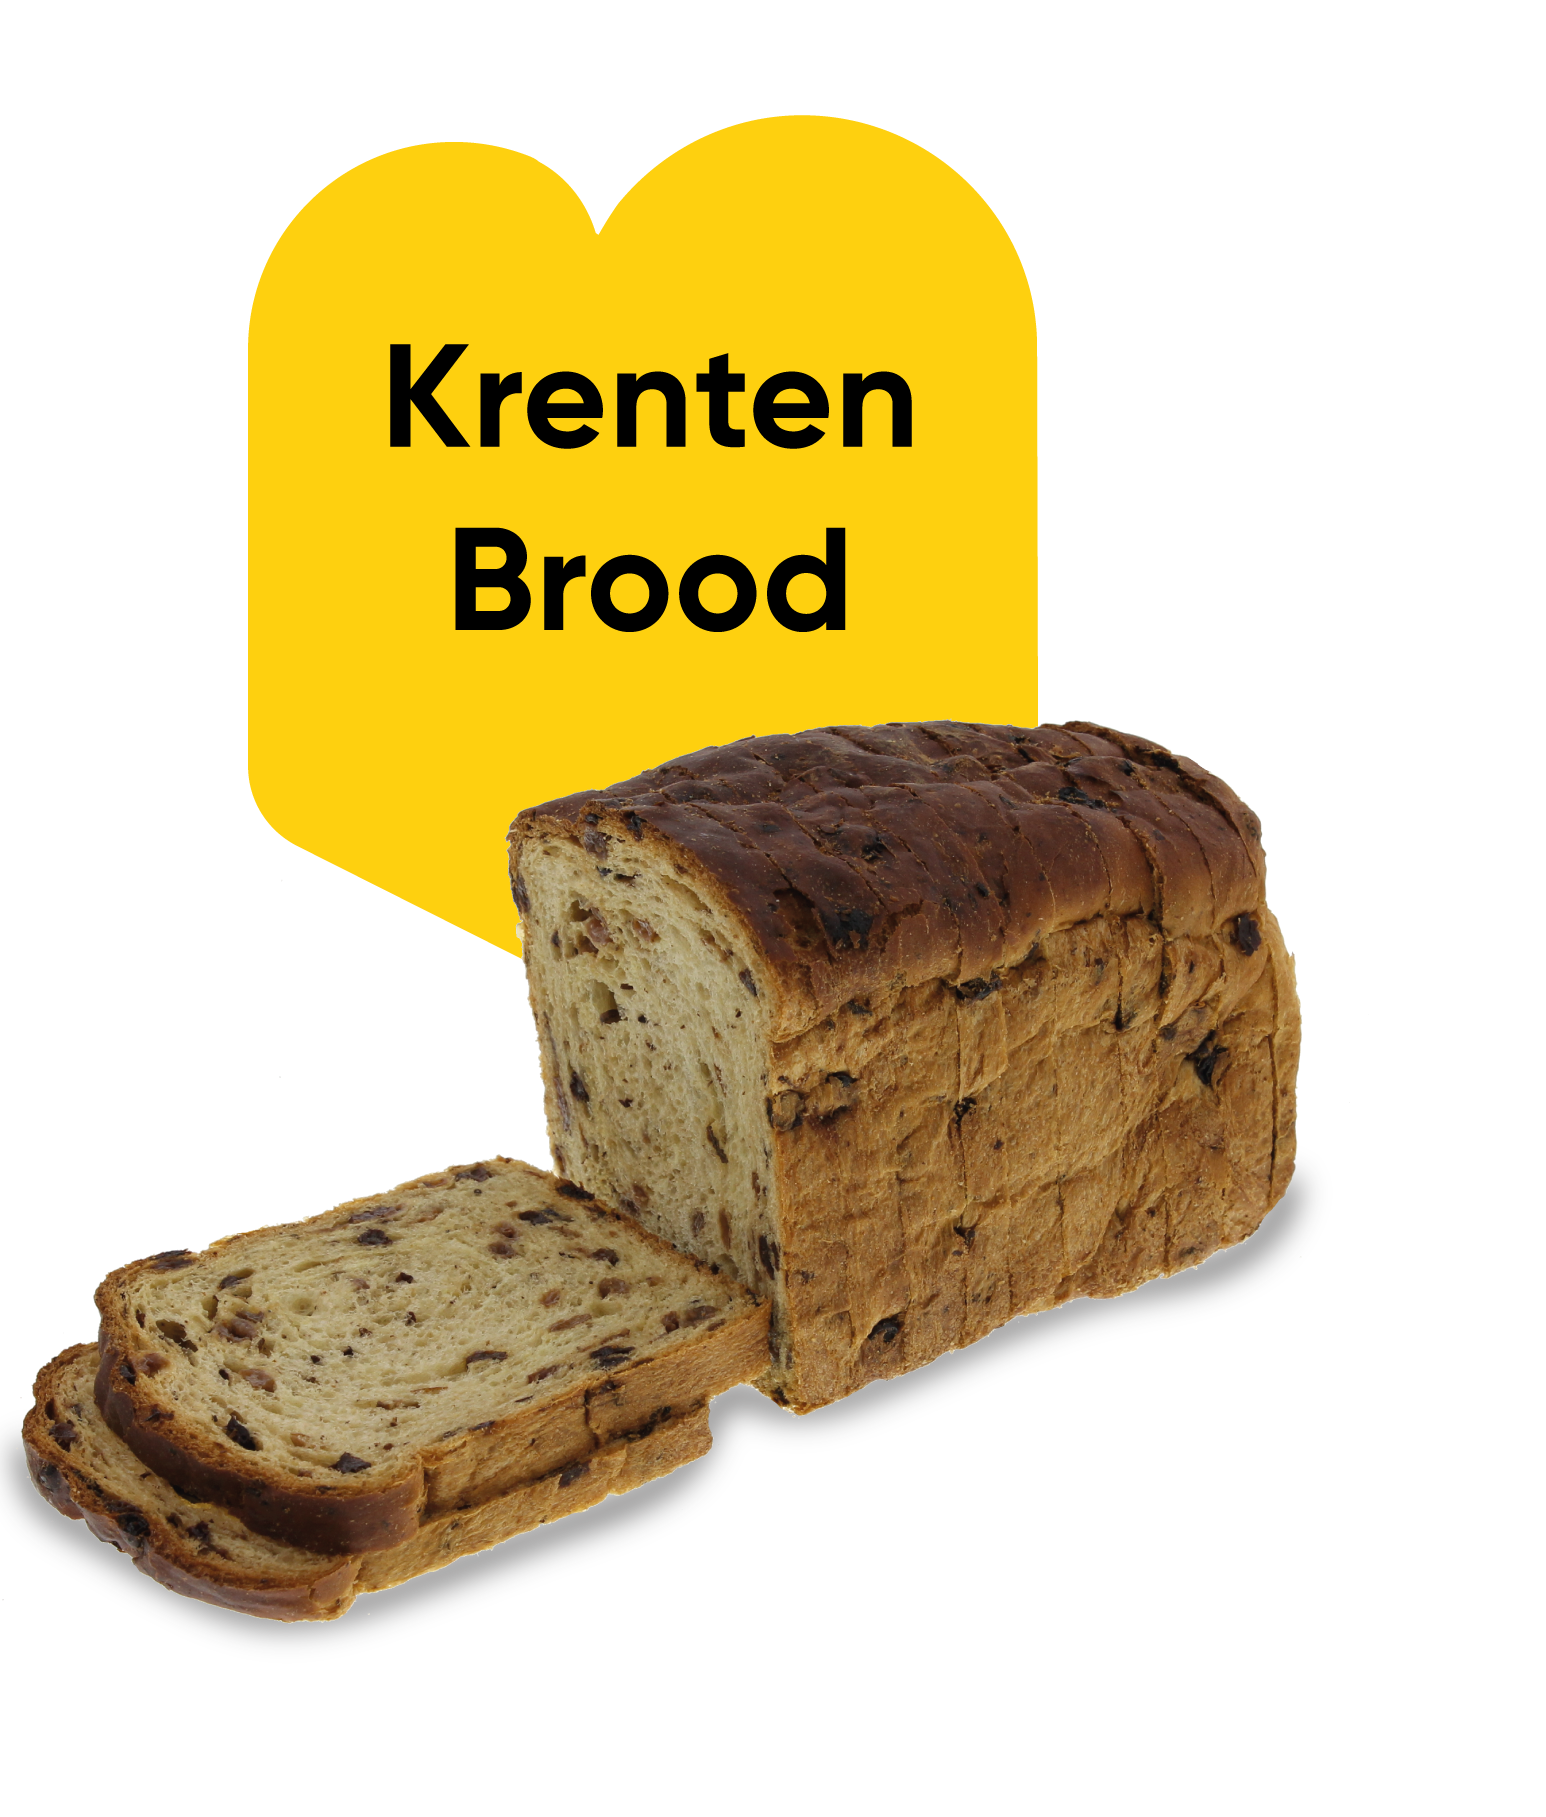 krenten brood